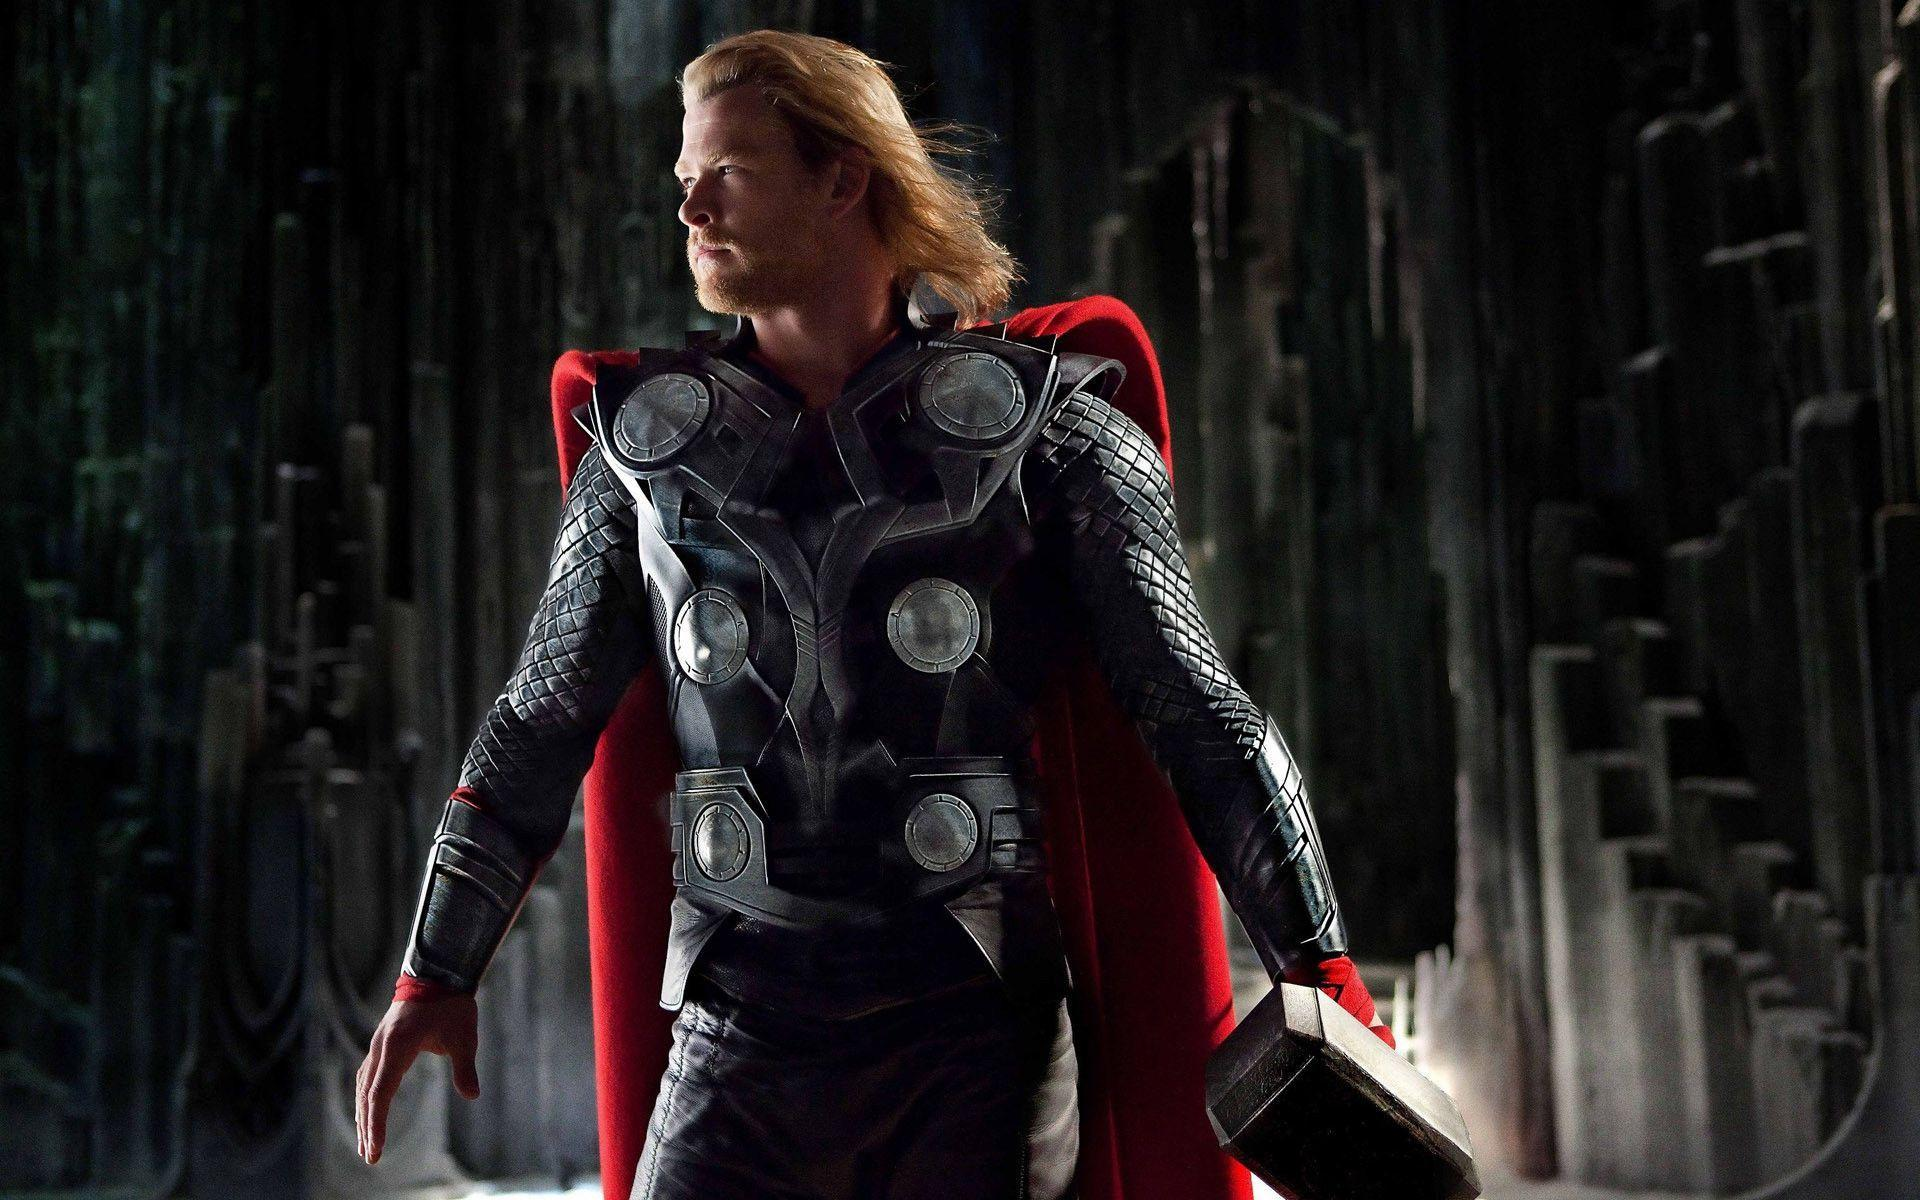 Thor wallpapers hd wallpaper cave - Chris hemsworth hd images ...